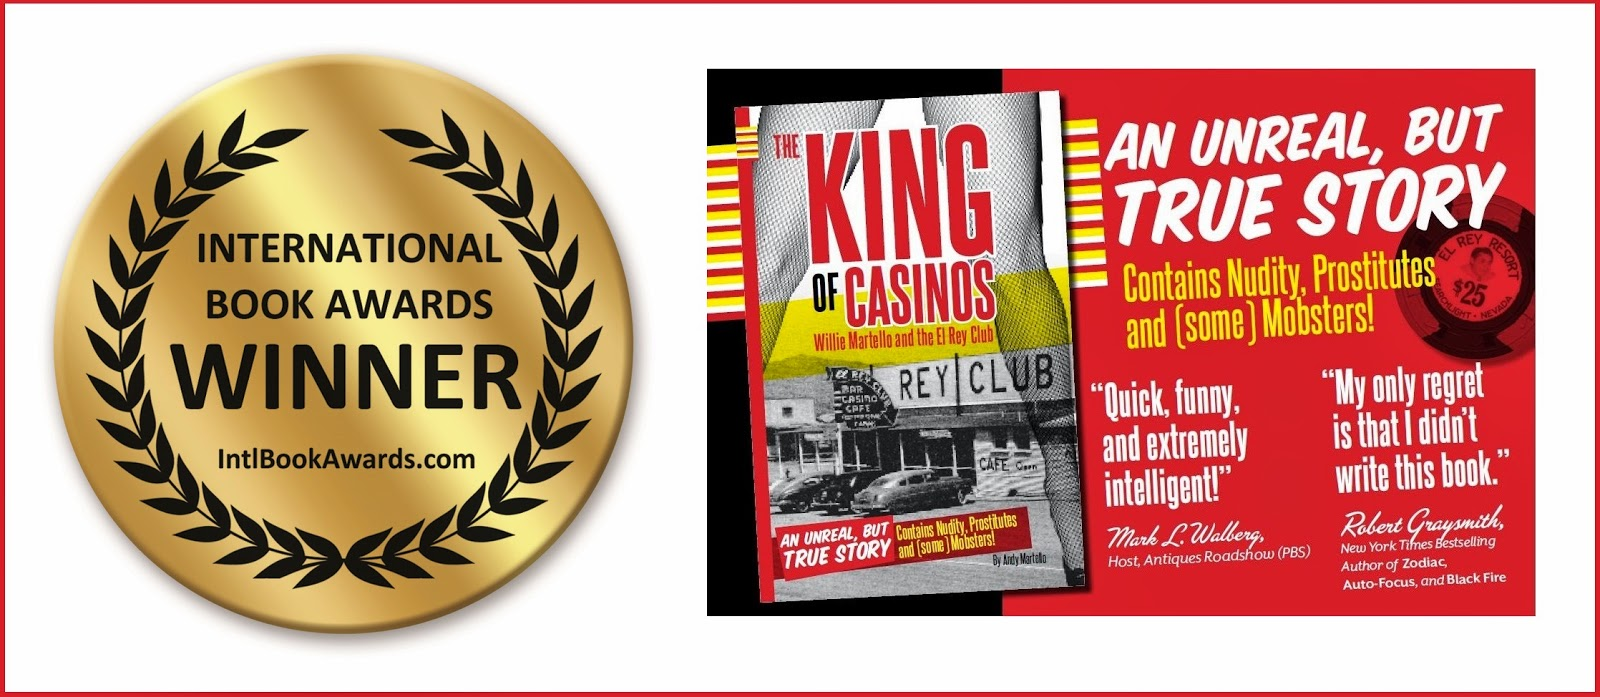 King of Casino WINNER International Book Awards